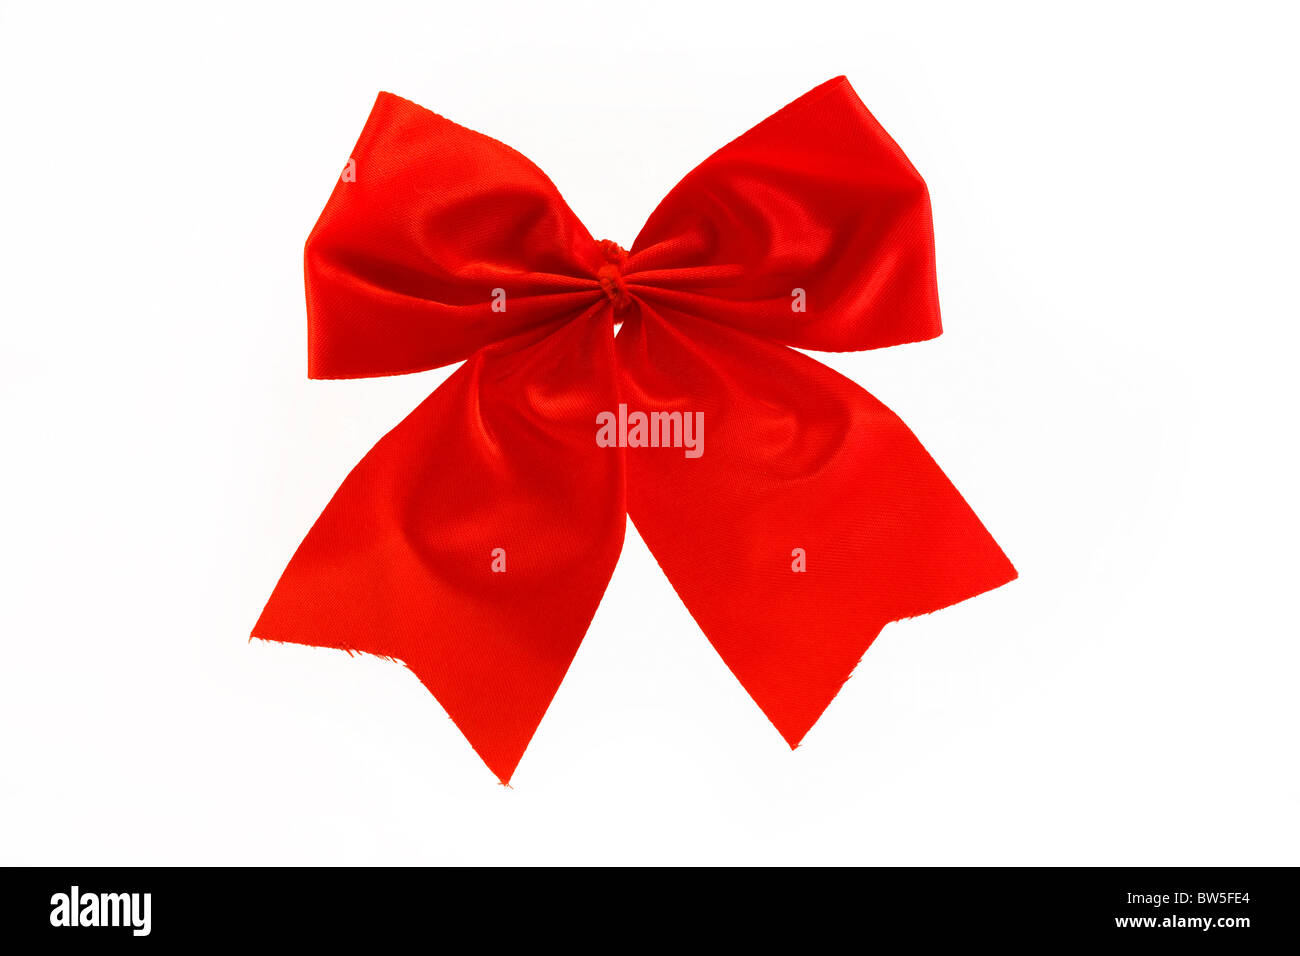 single red bow isolated over white - Stock Image